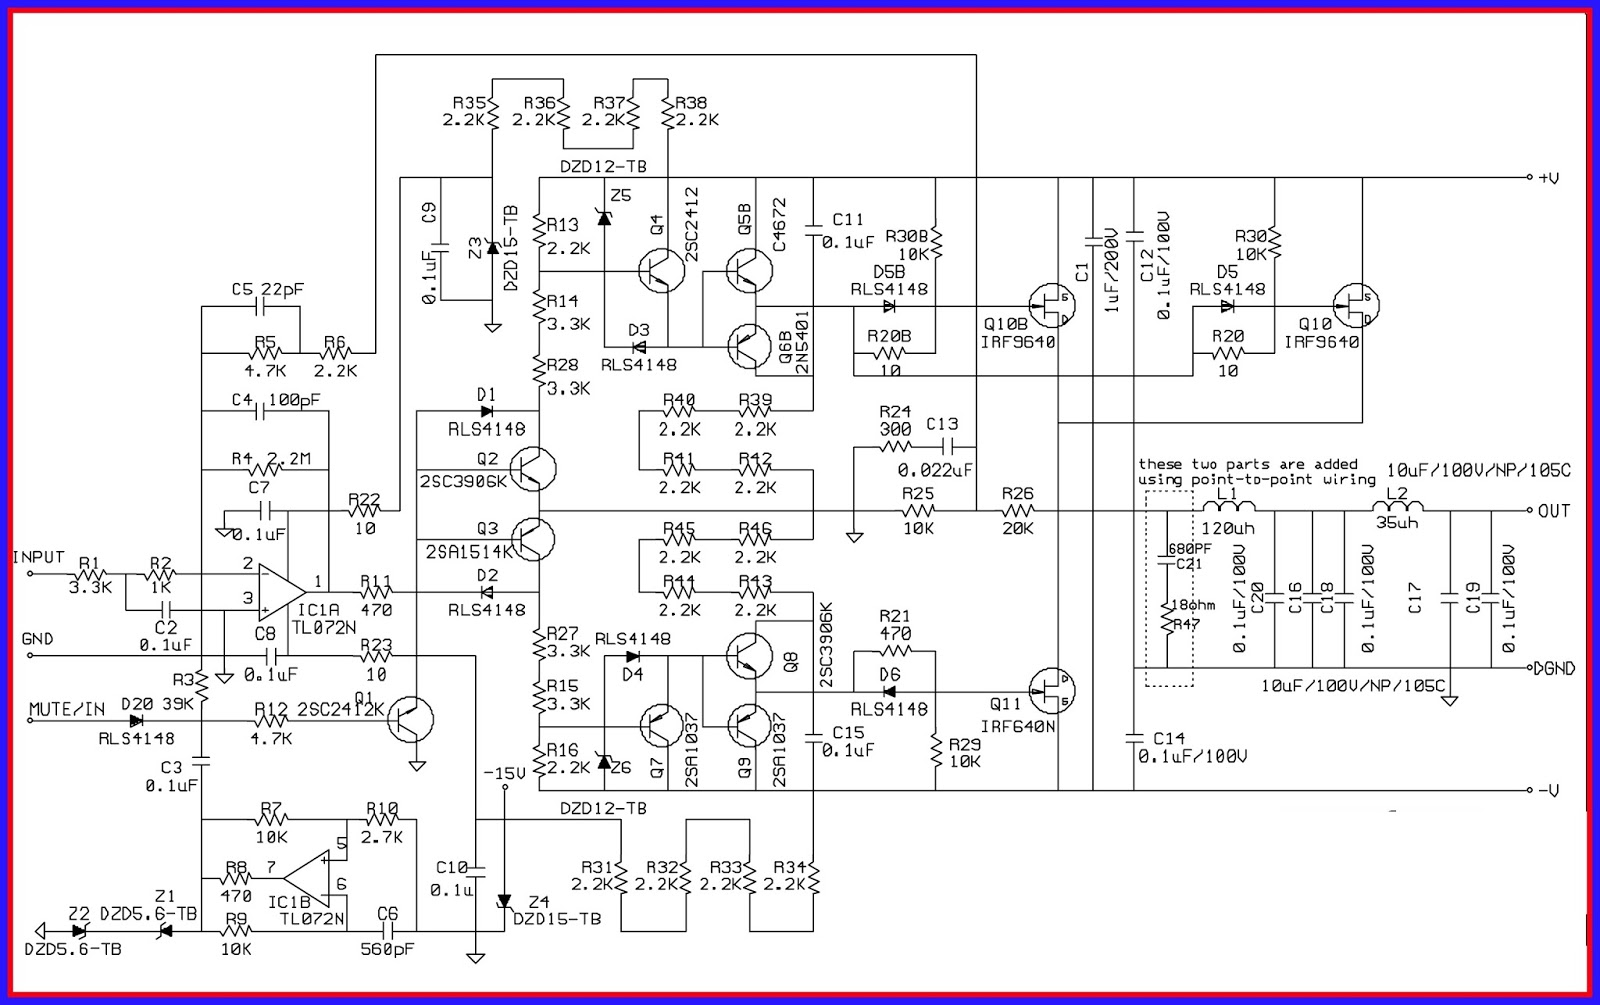 Home Theatre Circuit Diagram - Wiring Diagram For Light Switch •